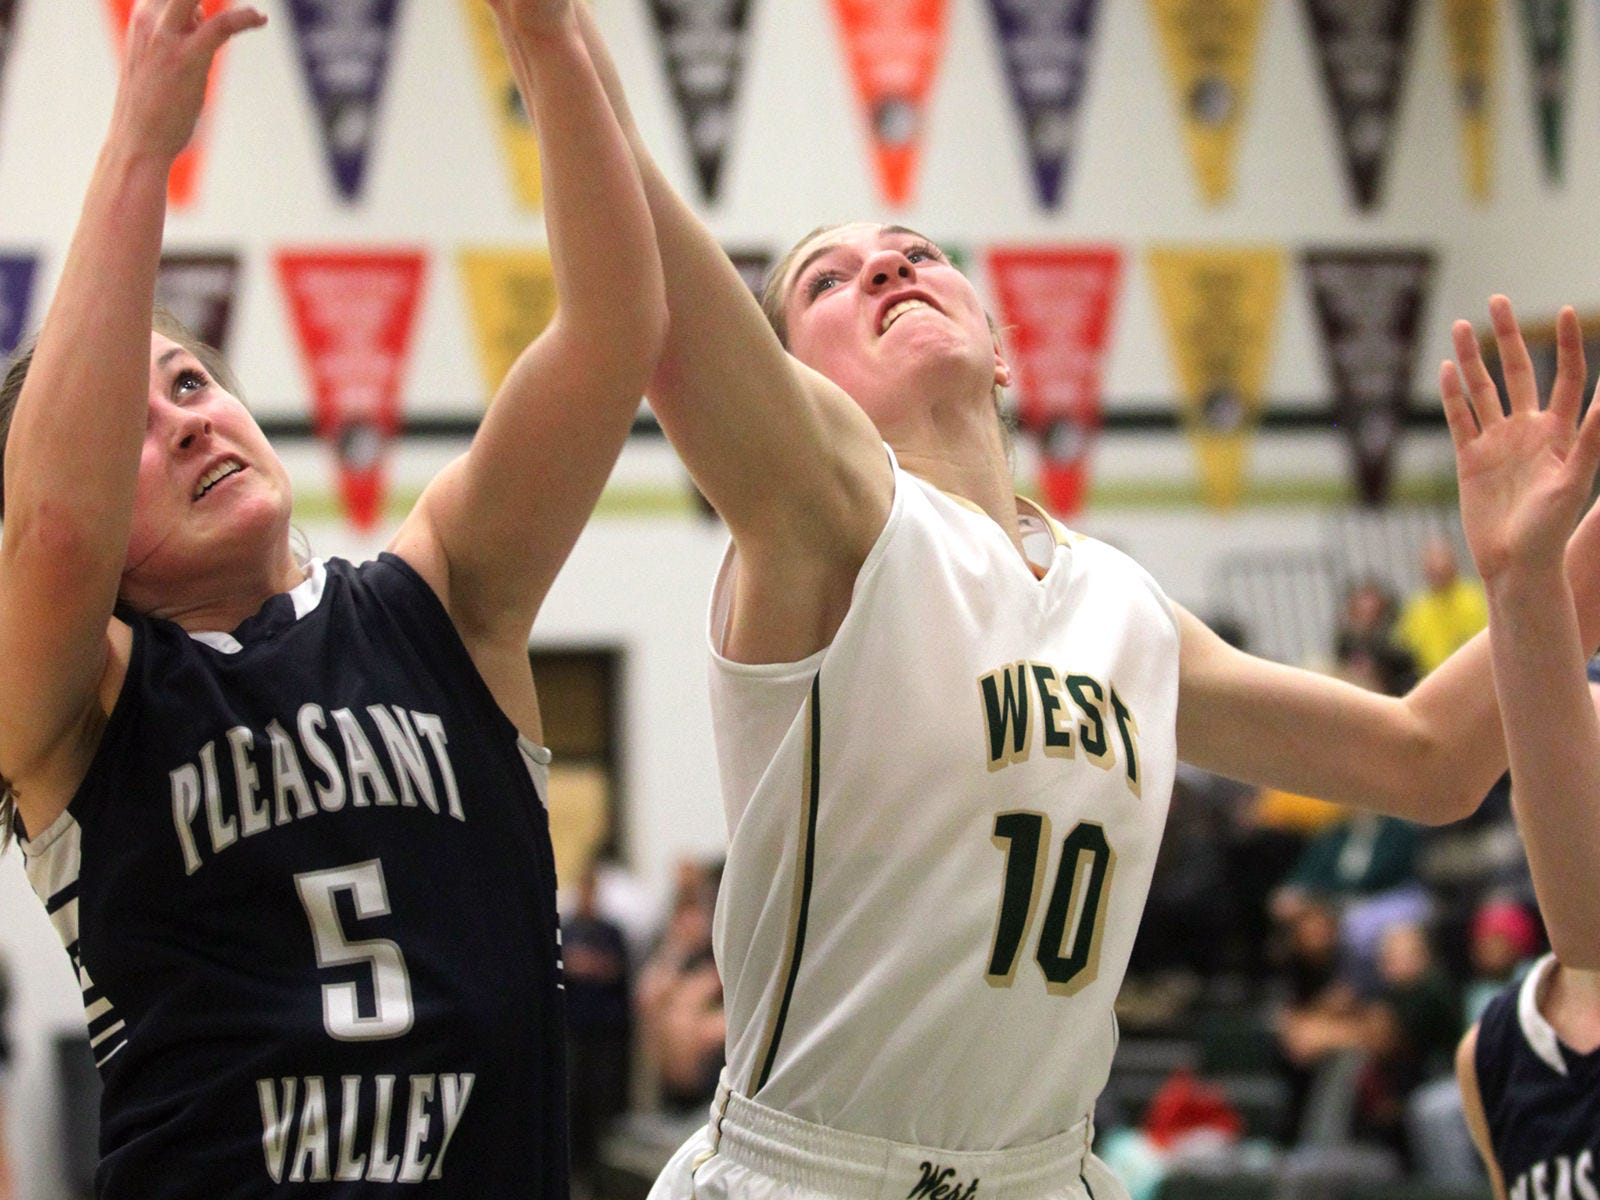 West High's Ali Tauchen tries to pull in a rebound during the Women of Troy's Class 5A regional final against Pleasant Valley on Tuesday, Feb. 24, 2015. West High won, 45-27, to advance to the state tournament. David Scrivner / Iowa City Press-Citizen